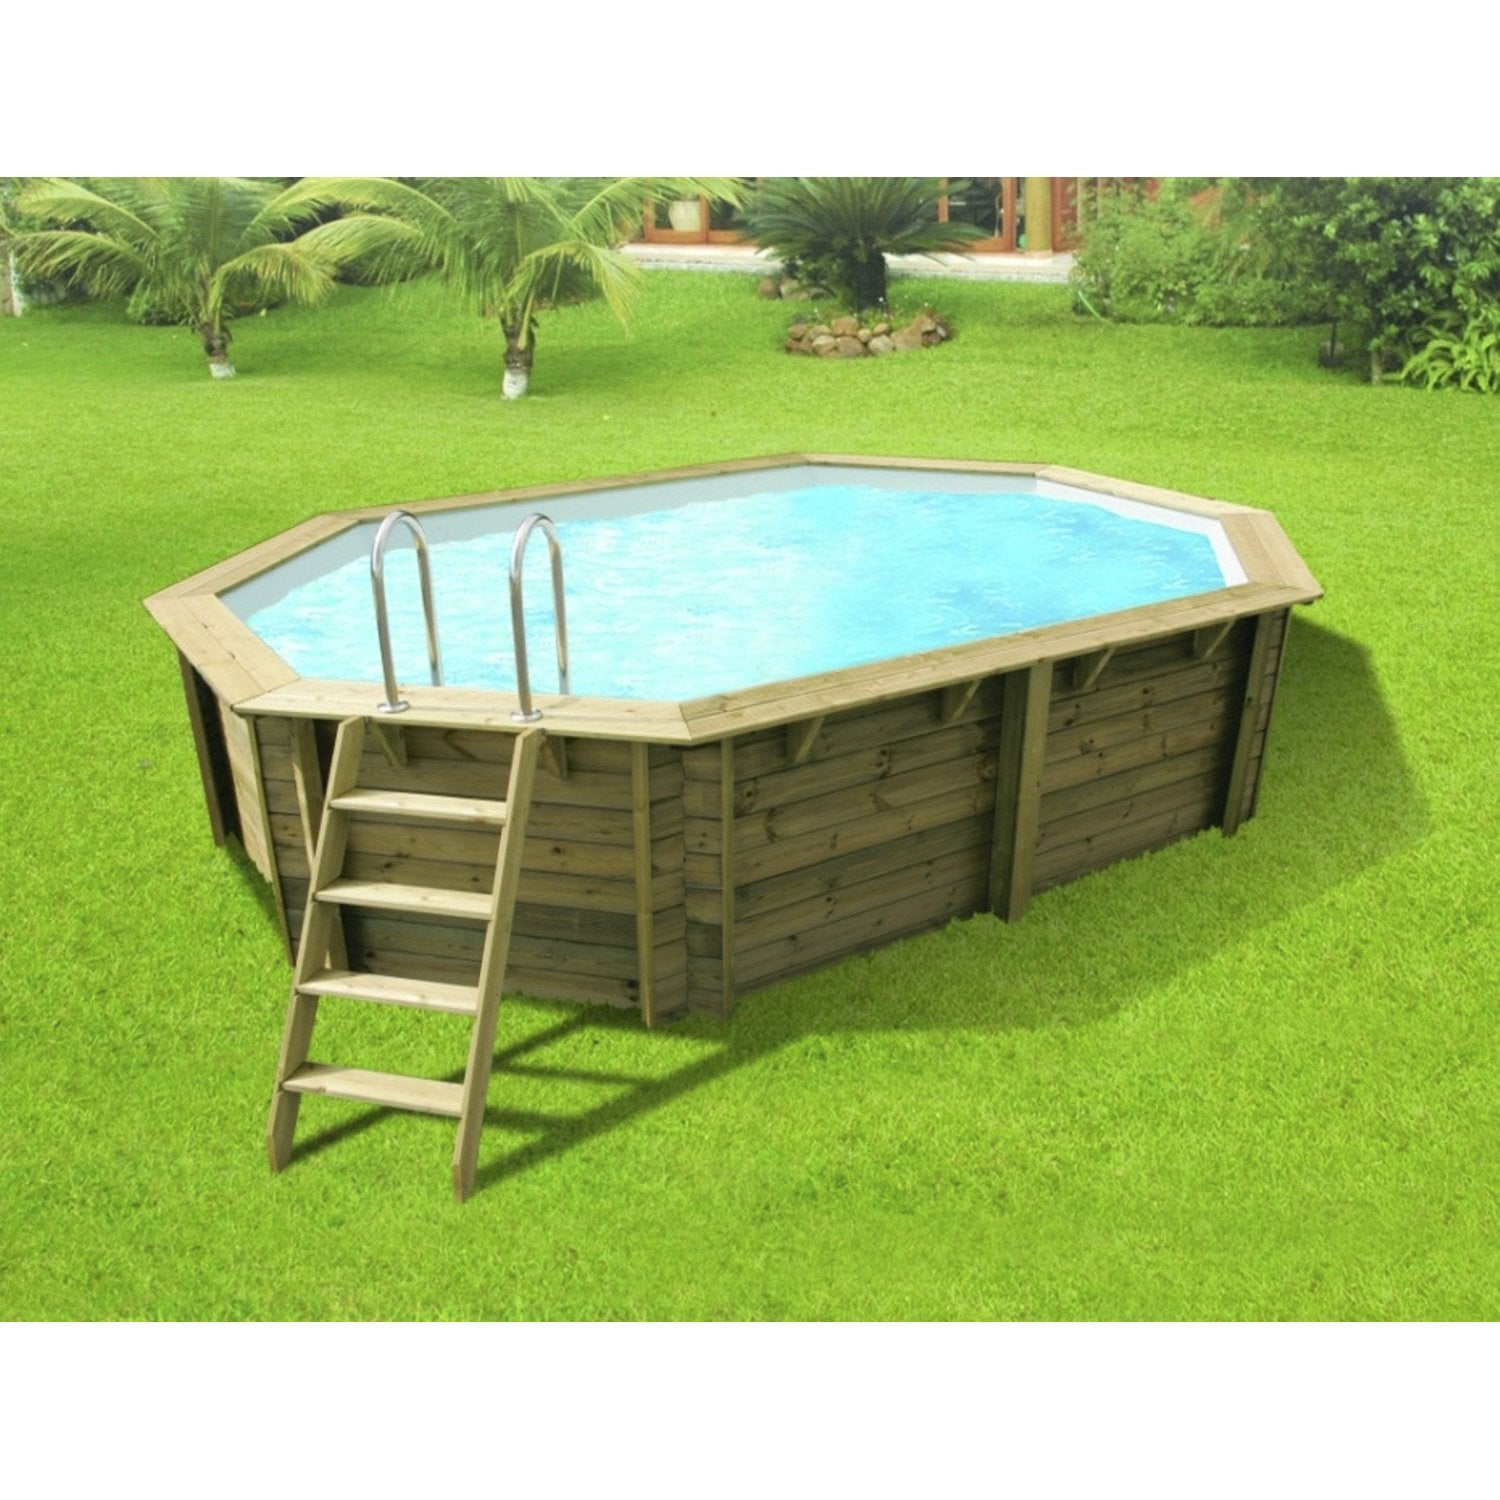 Piscine hors sol bois athena xl diam 6 1 l 6 1 x l 4 x h for Piscine hors sol imposable